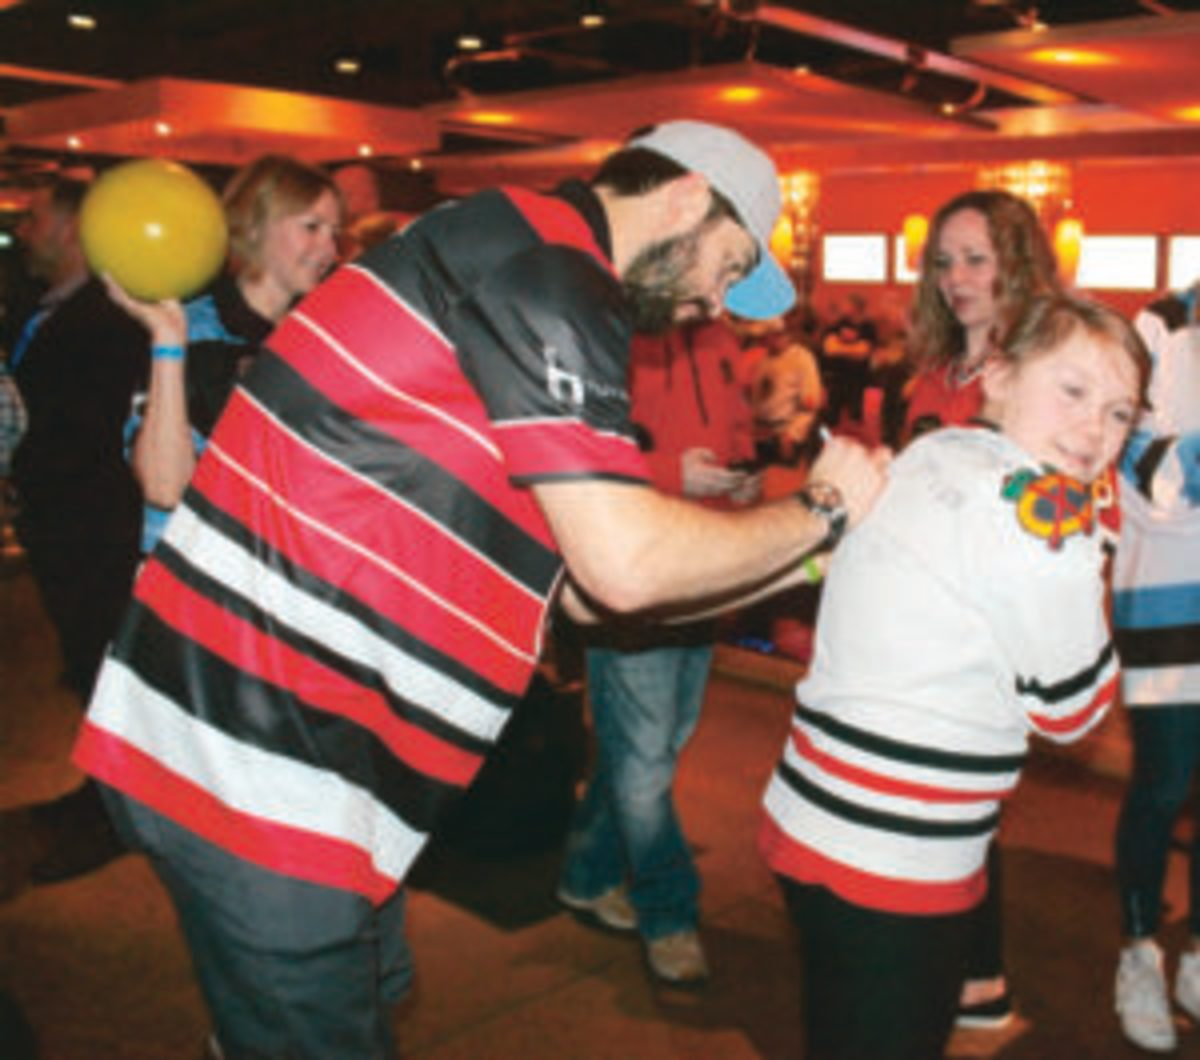 Brent Seabrook signs the jersey of a young fan. (Rick Firfer photos)